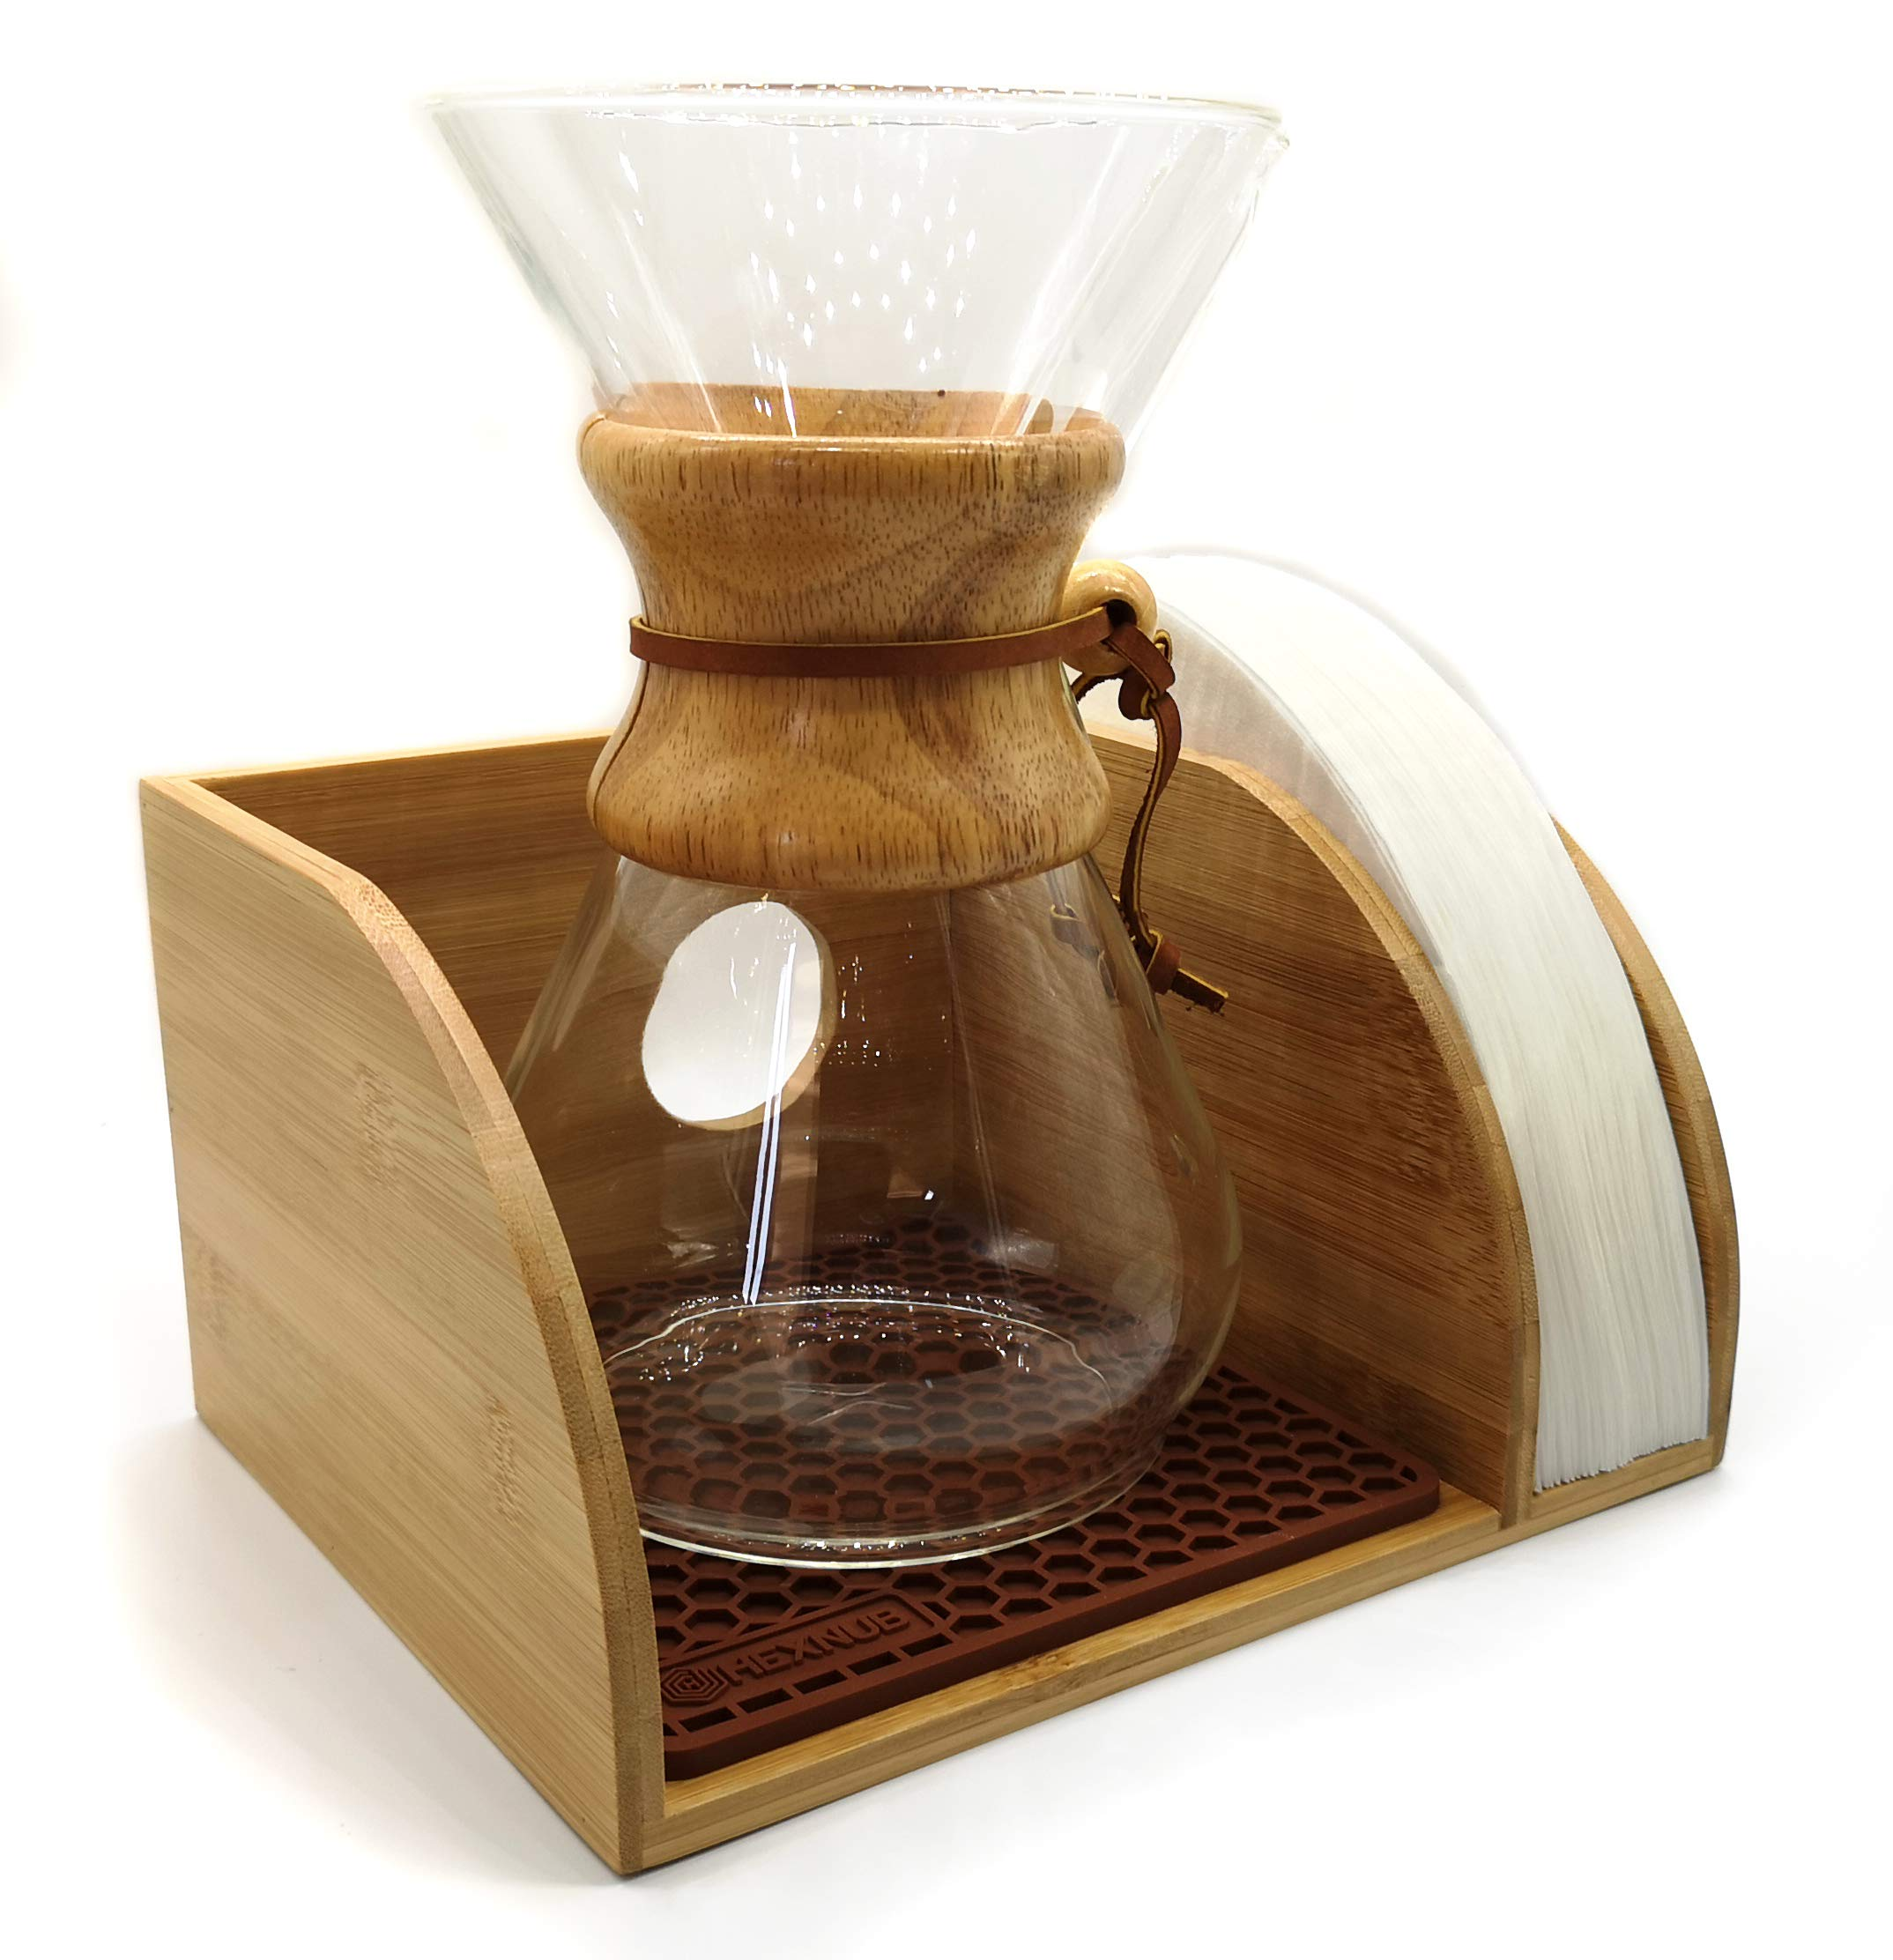 Hexnub Coffee Organizer Stand for Chemex, Bodum and Coffee Gator filtered Coffee Makers Premium Bamboo Caddy Station Holds Pour over Coffee Maker and Filters with Brown Dripper Mat by HEXNUB